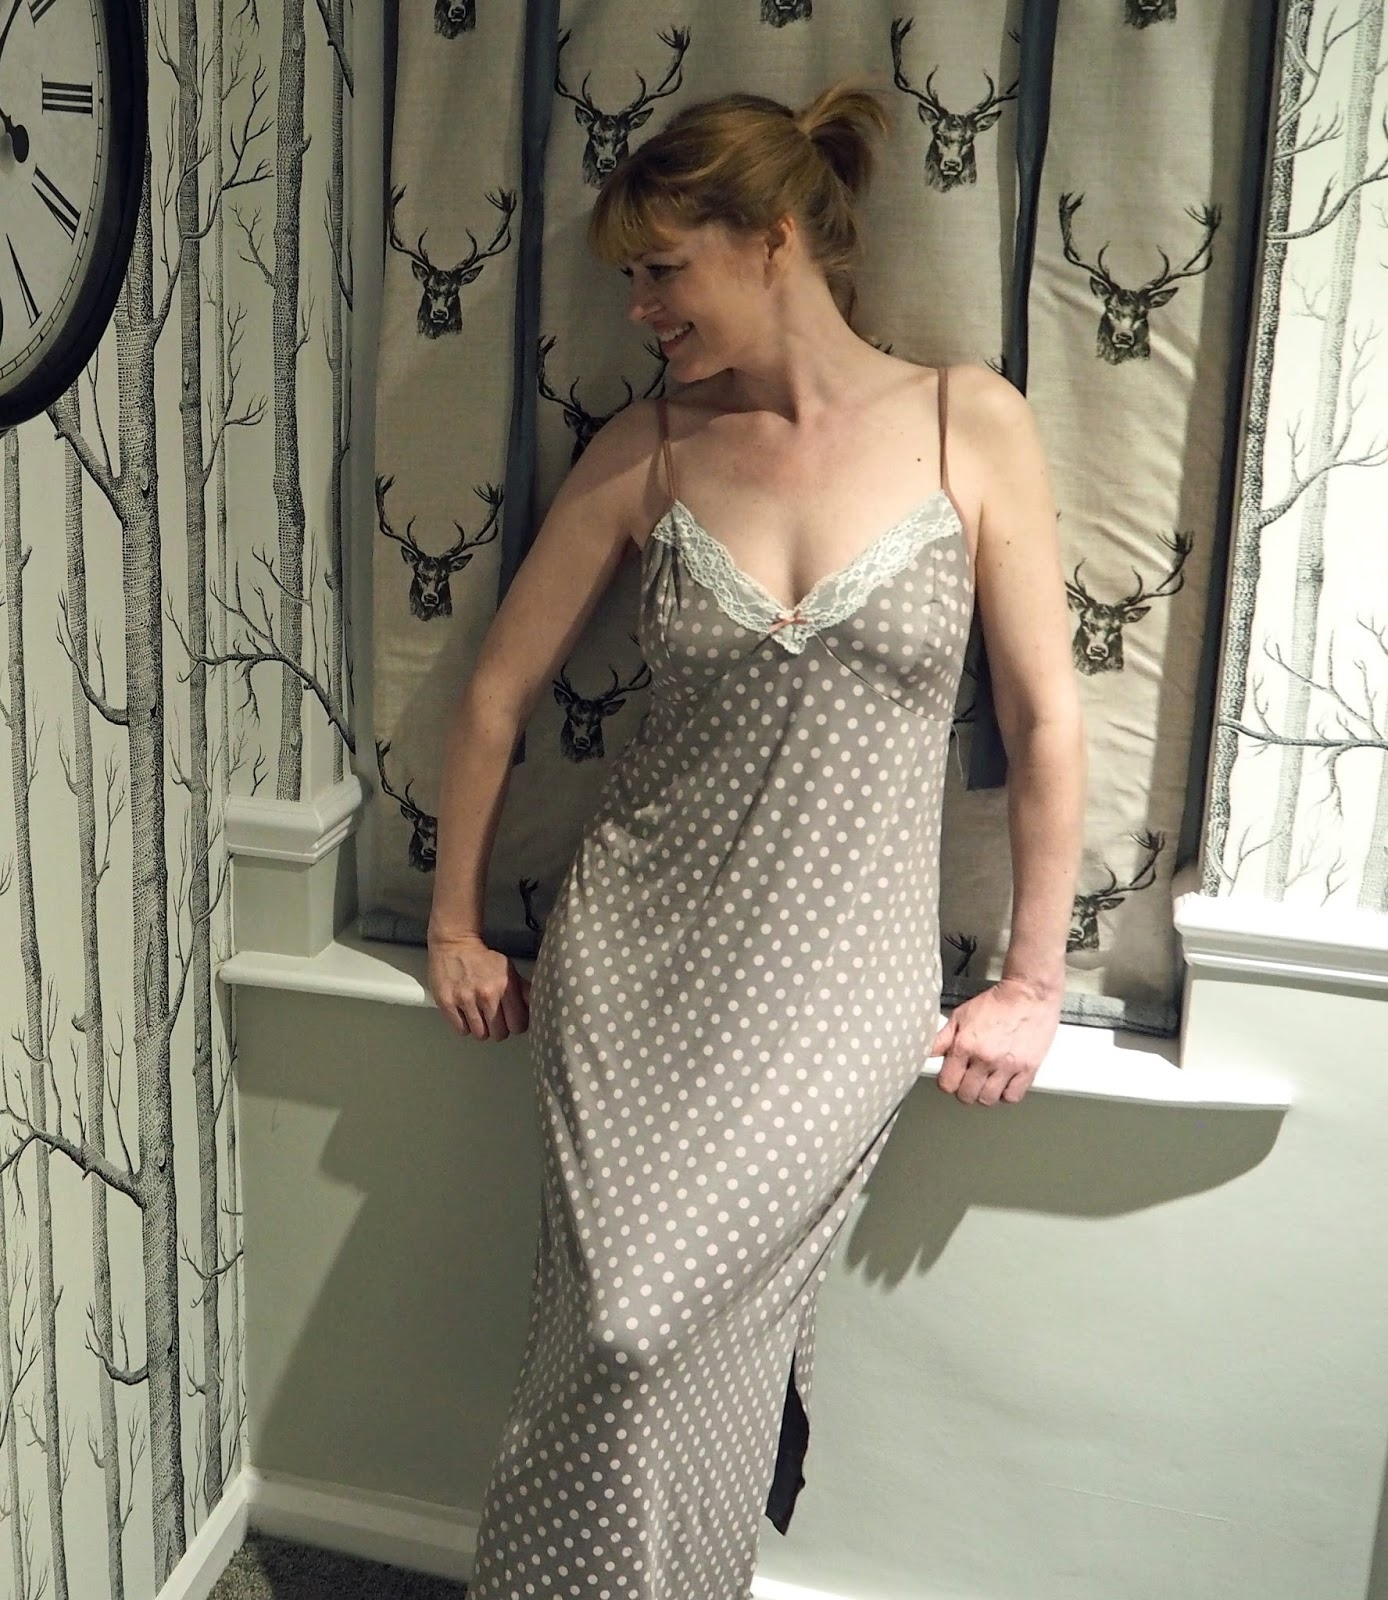 Blackspade noir Olivia spotted nightgown, from UK Lingerie What Lizzy Loves Tips for a better night sleep